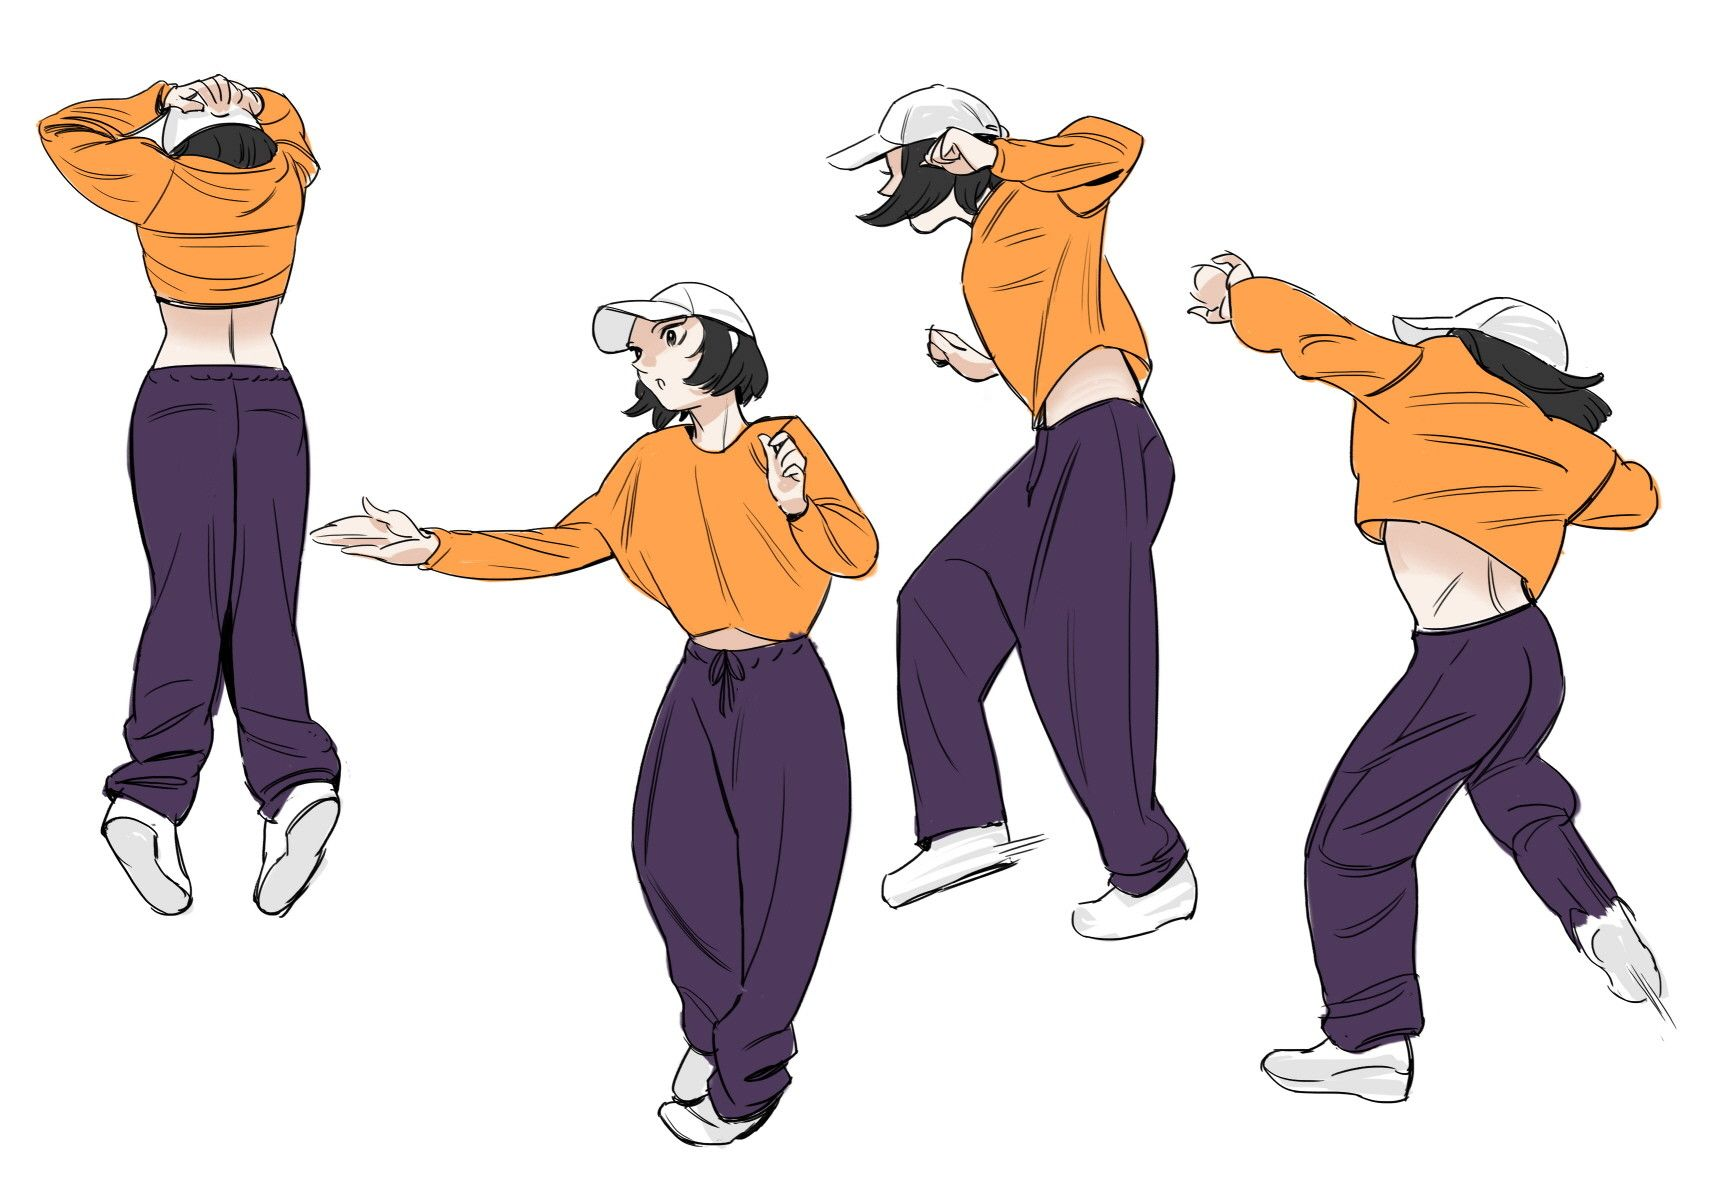 Dancing Figures Anime Character Dancing Drawings Art Poses Dancing Figures